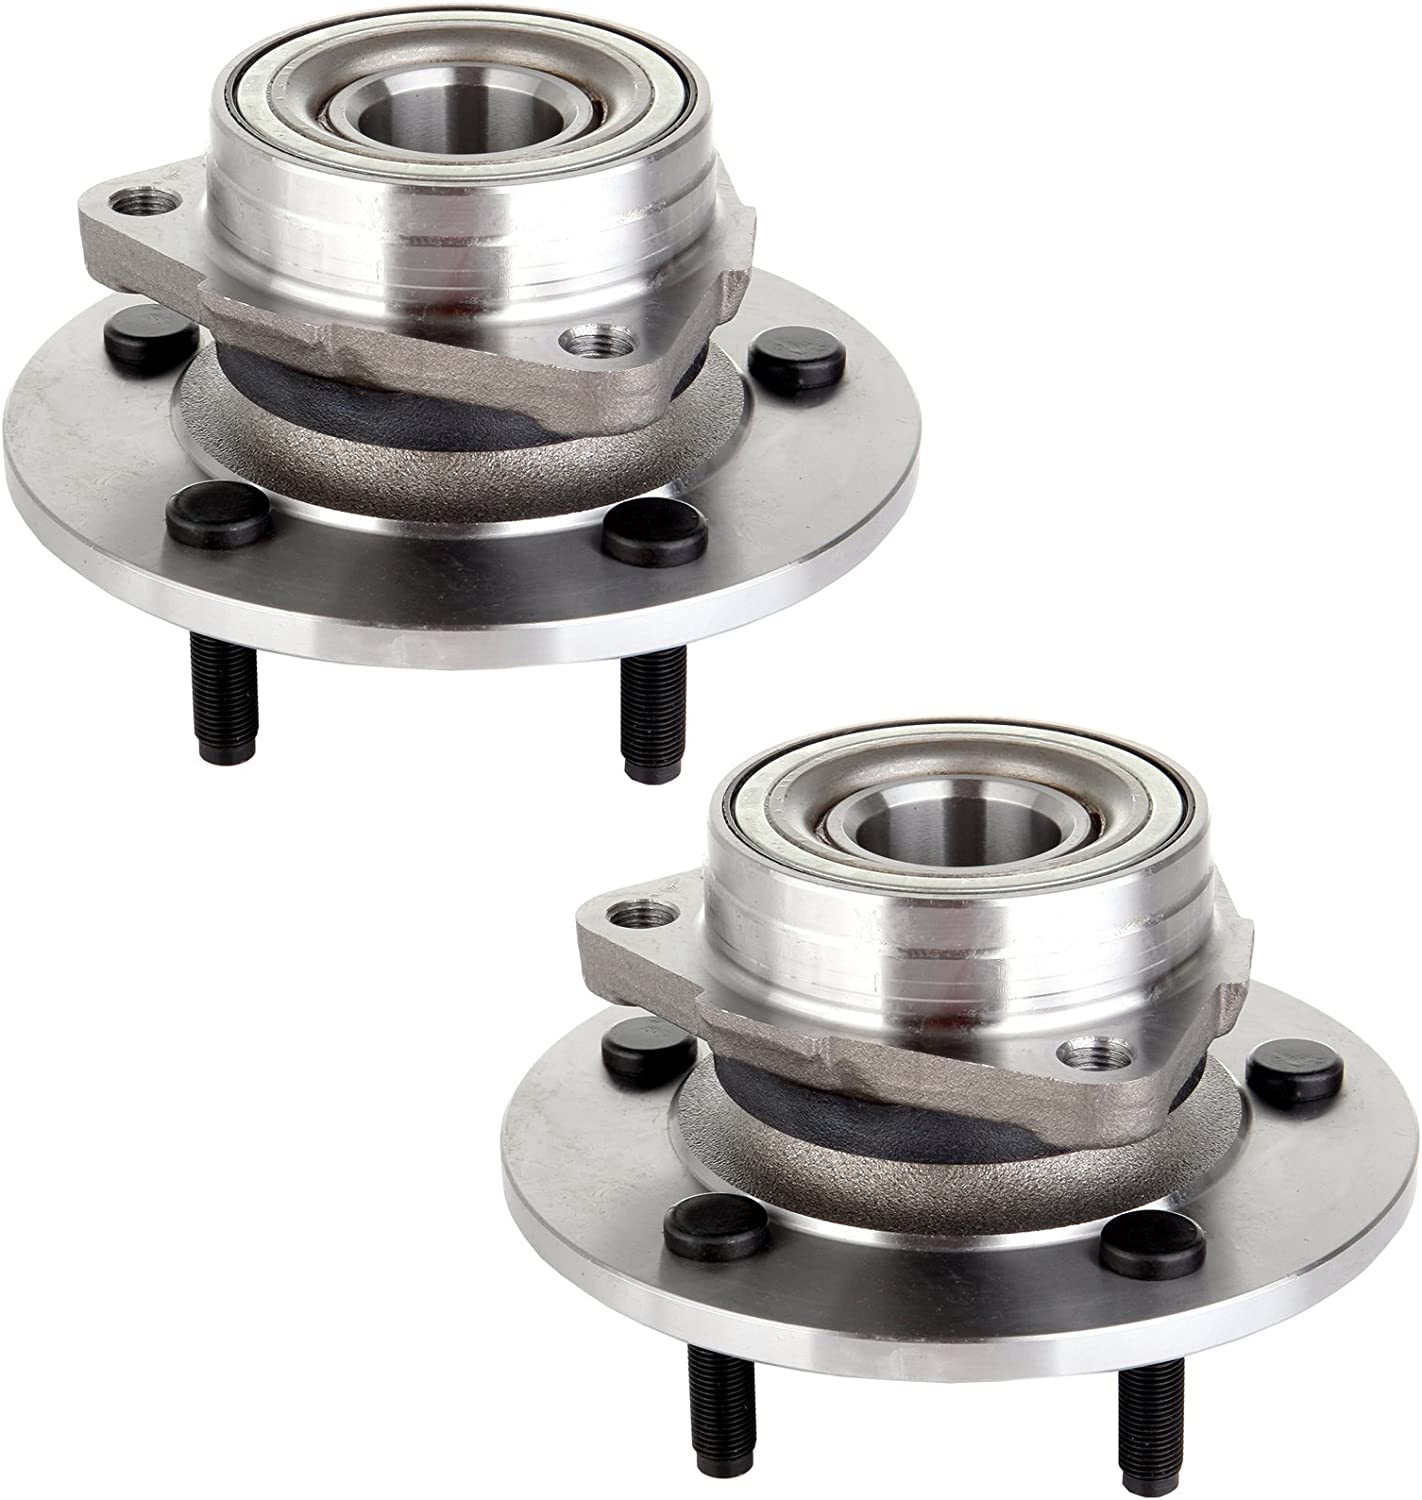 ECCPP Replacement New Front Wheel Mesa 2021 autumn and winter new Mall Hub 2000 2001 Dodg Bearing for